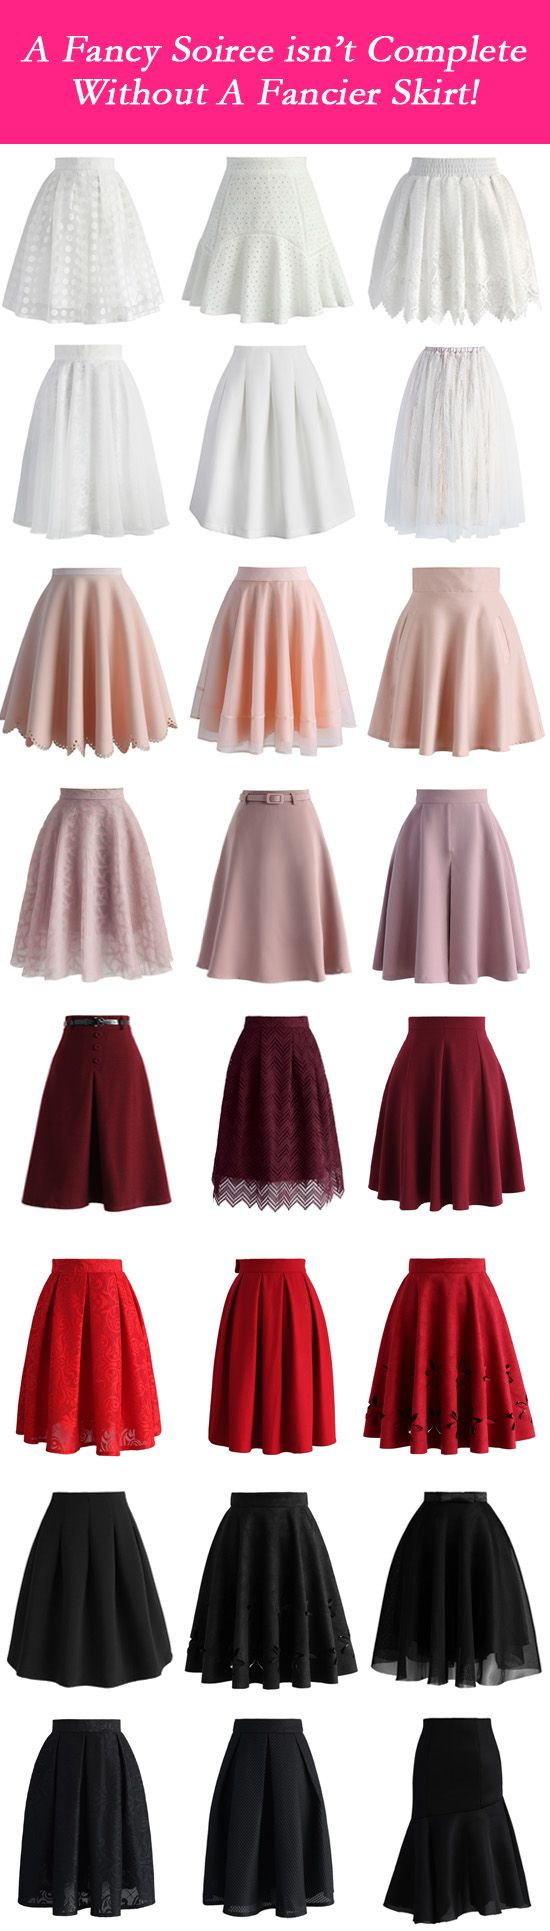 A fancy soiree isn't complete without a fancier skirt!